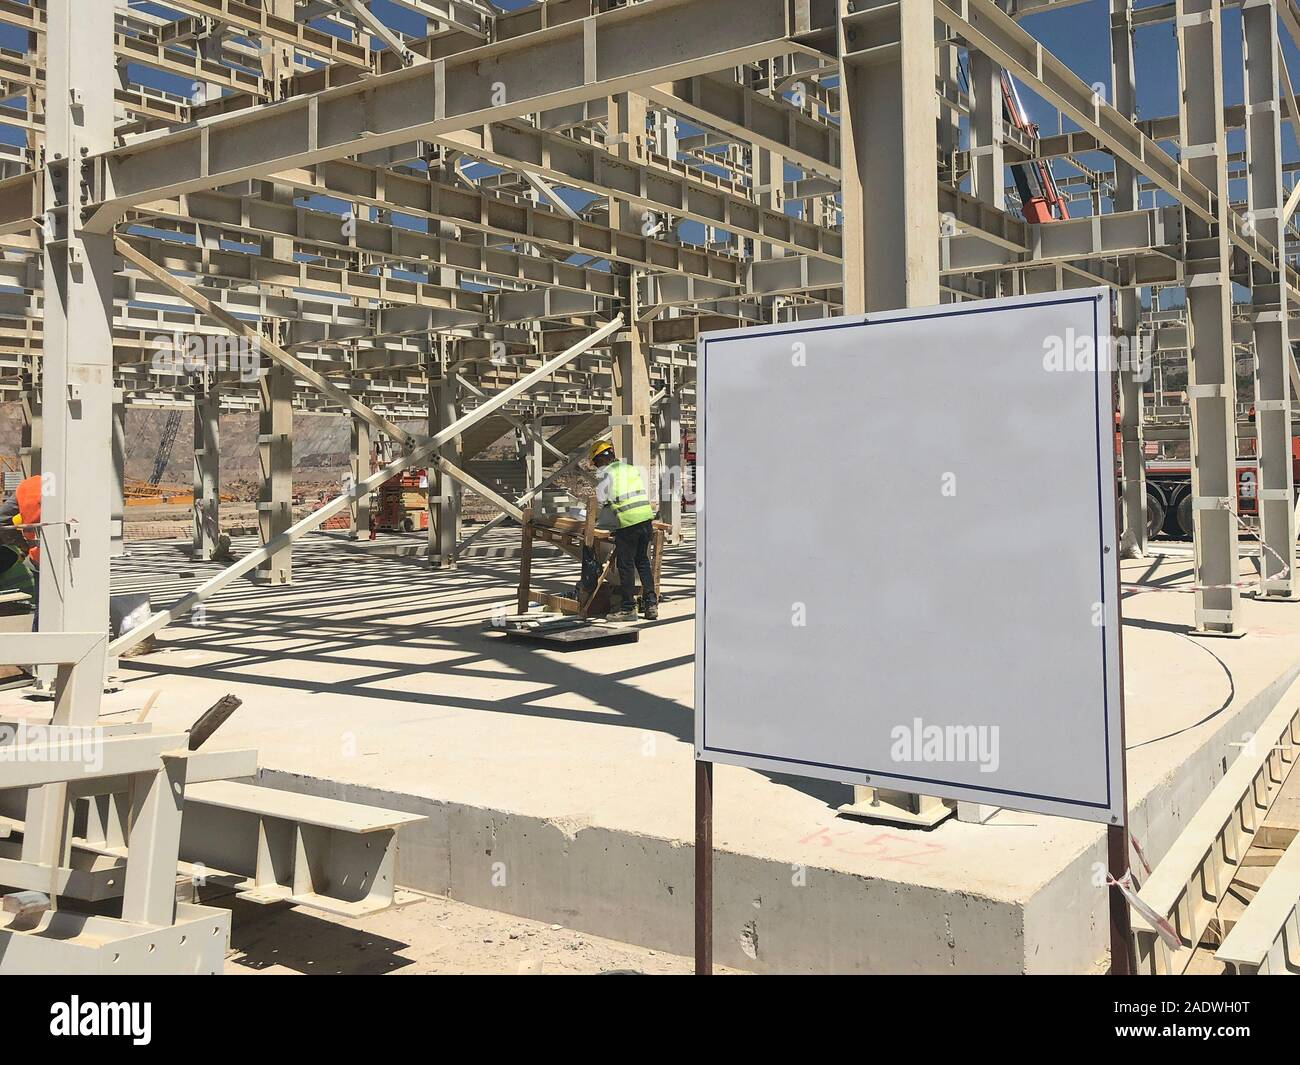 Object under construction stand at the construction site. Blank display board against prefabricated multi-storey building at the background Stock Photo